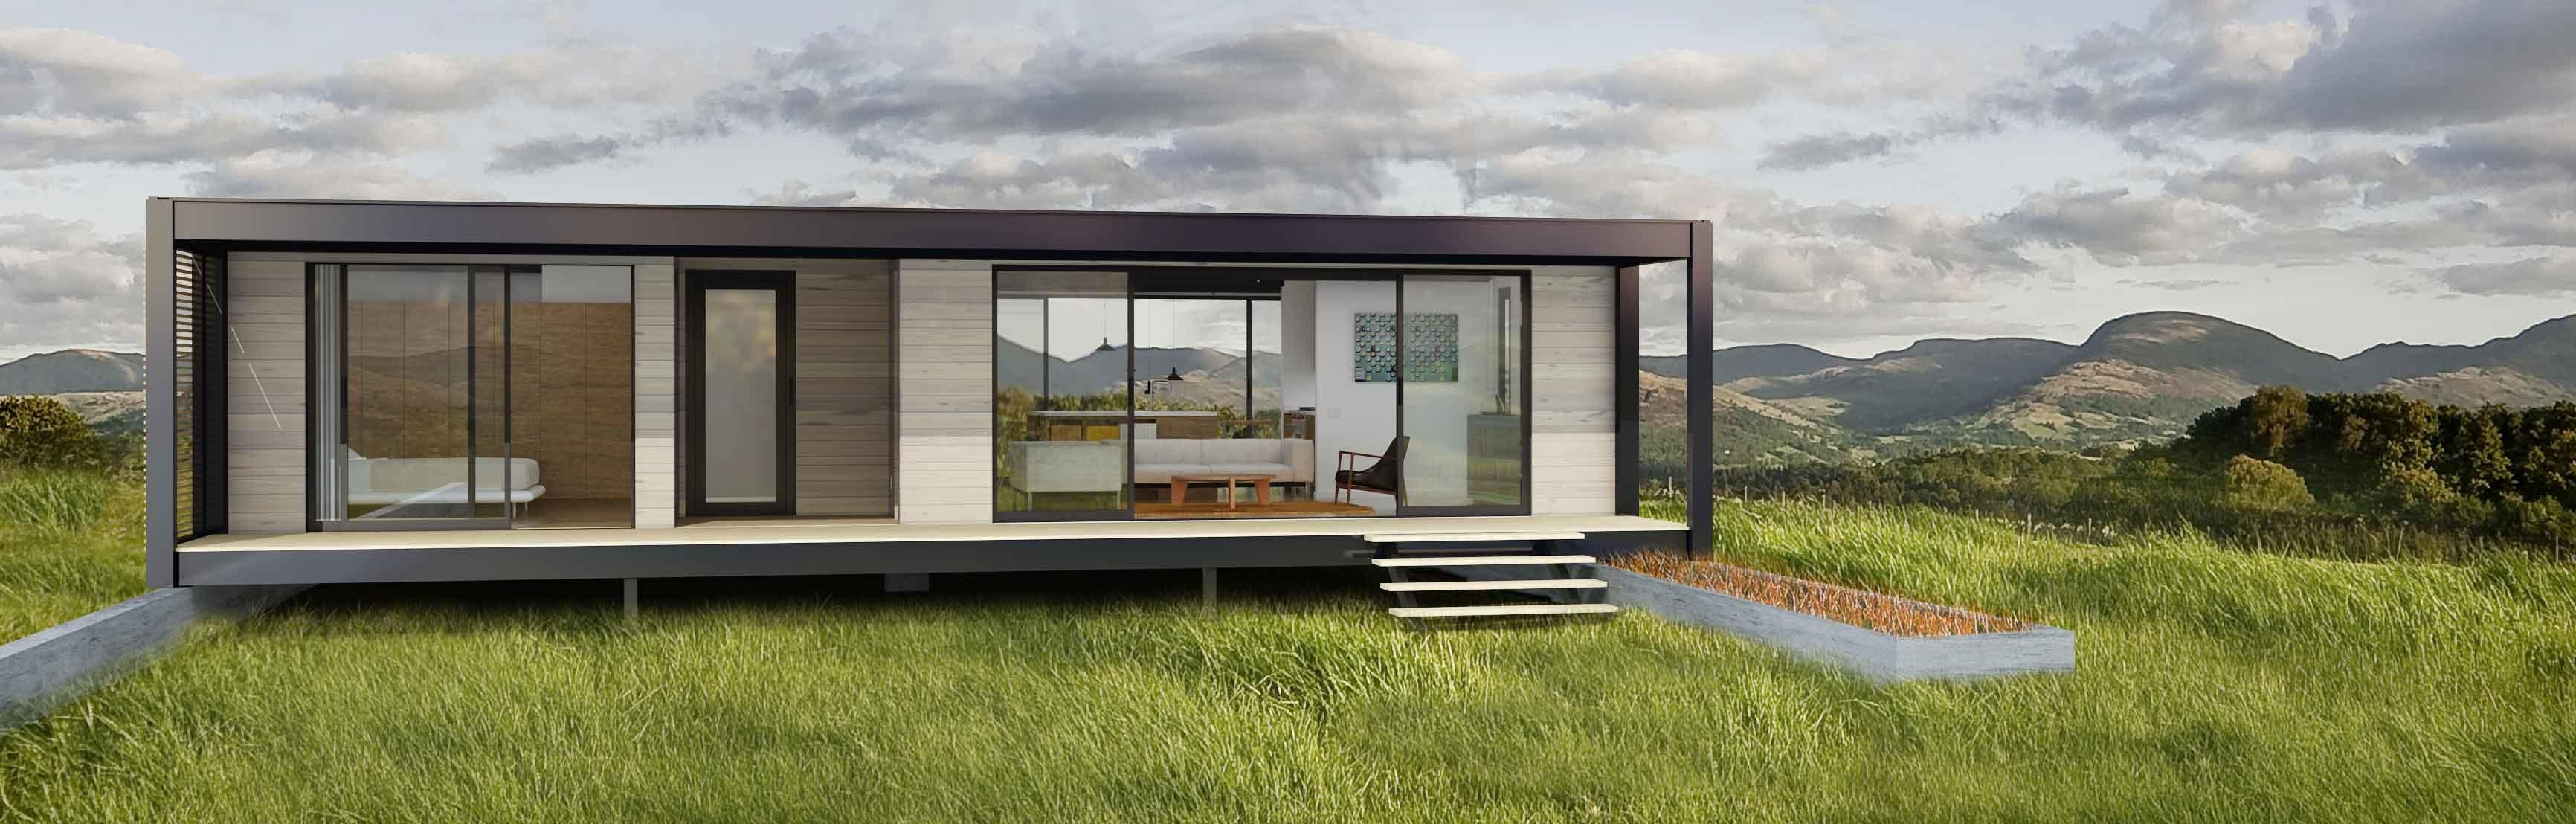 Top Small Modern Modular Home Plans